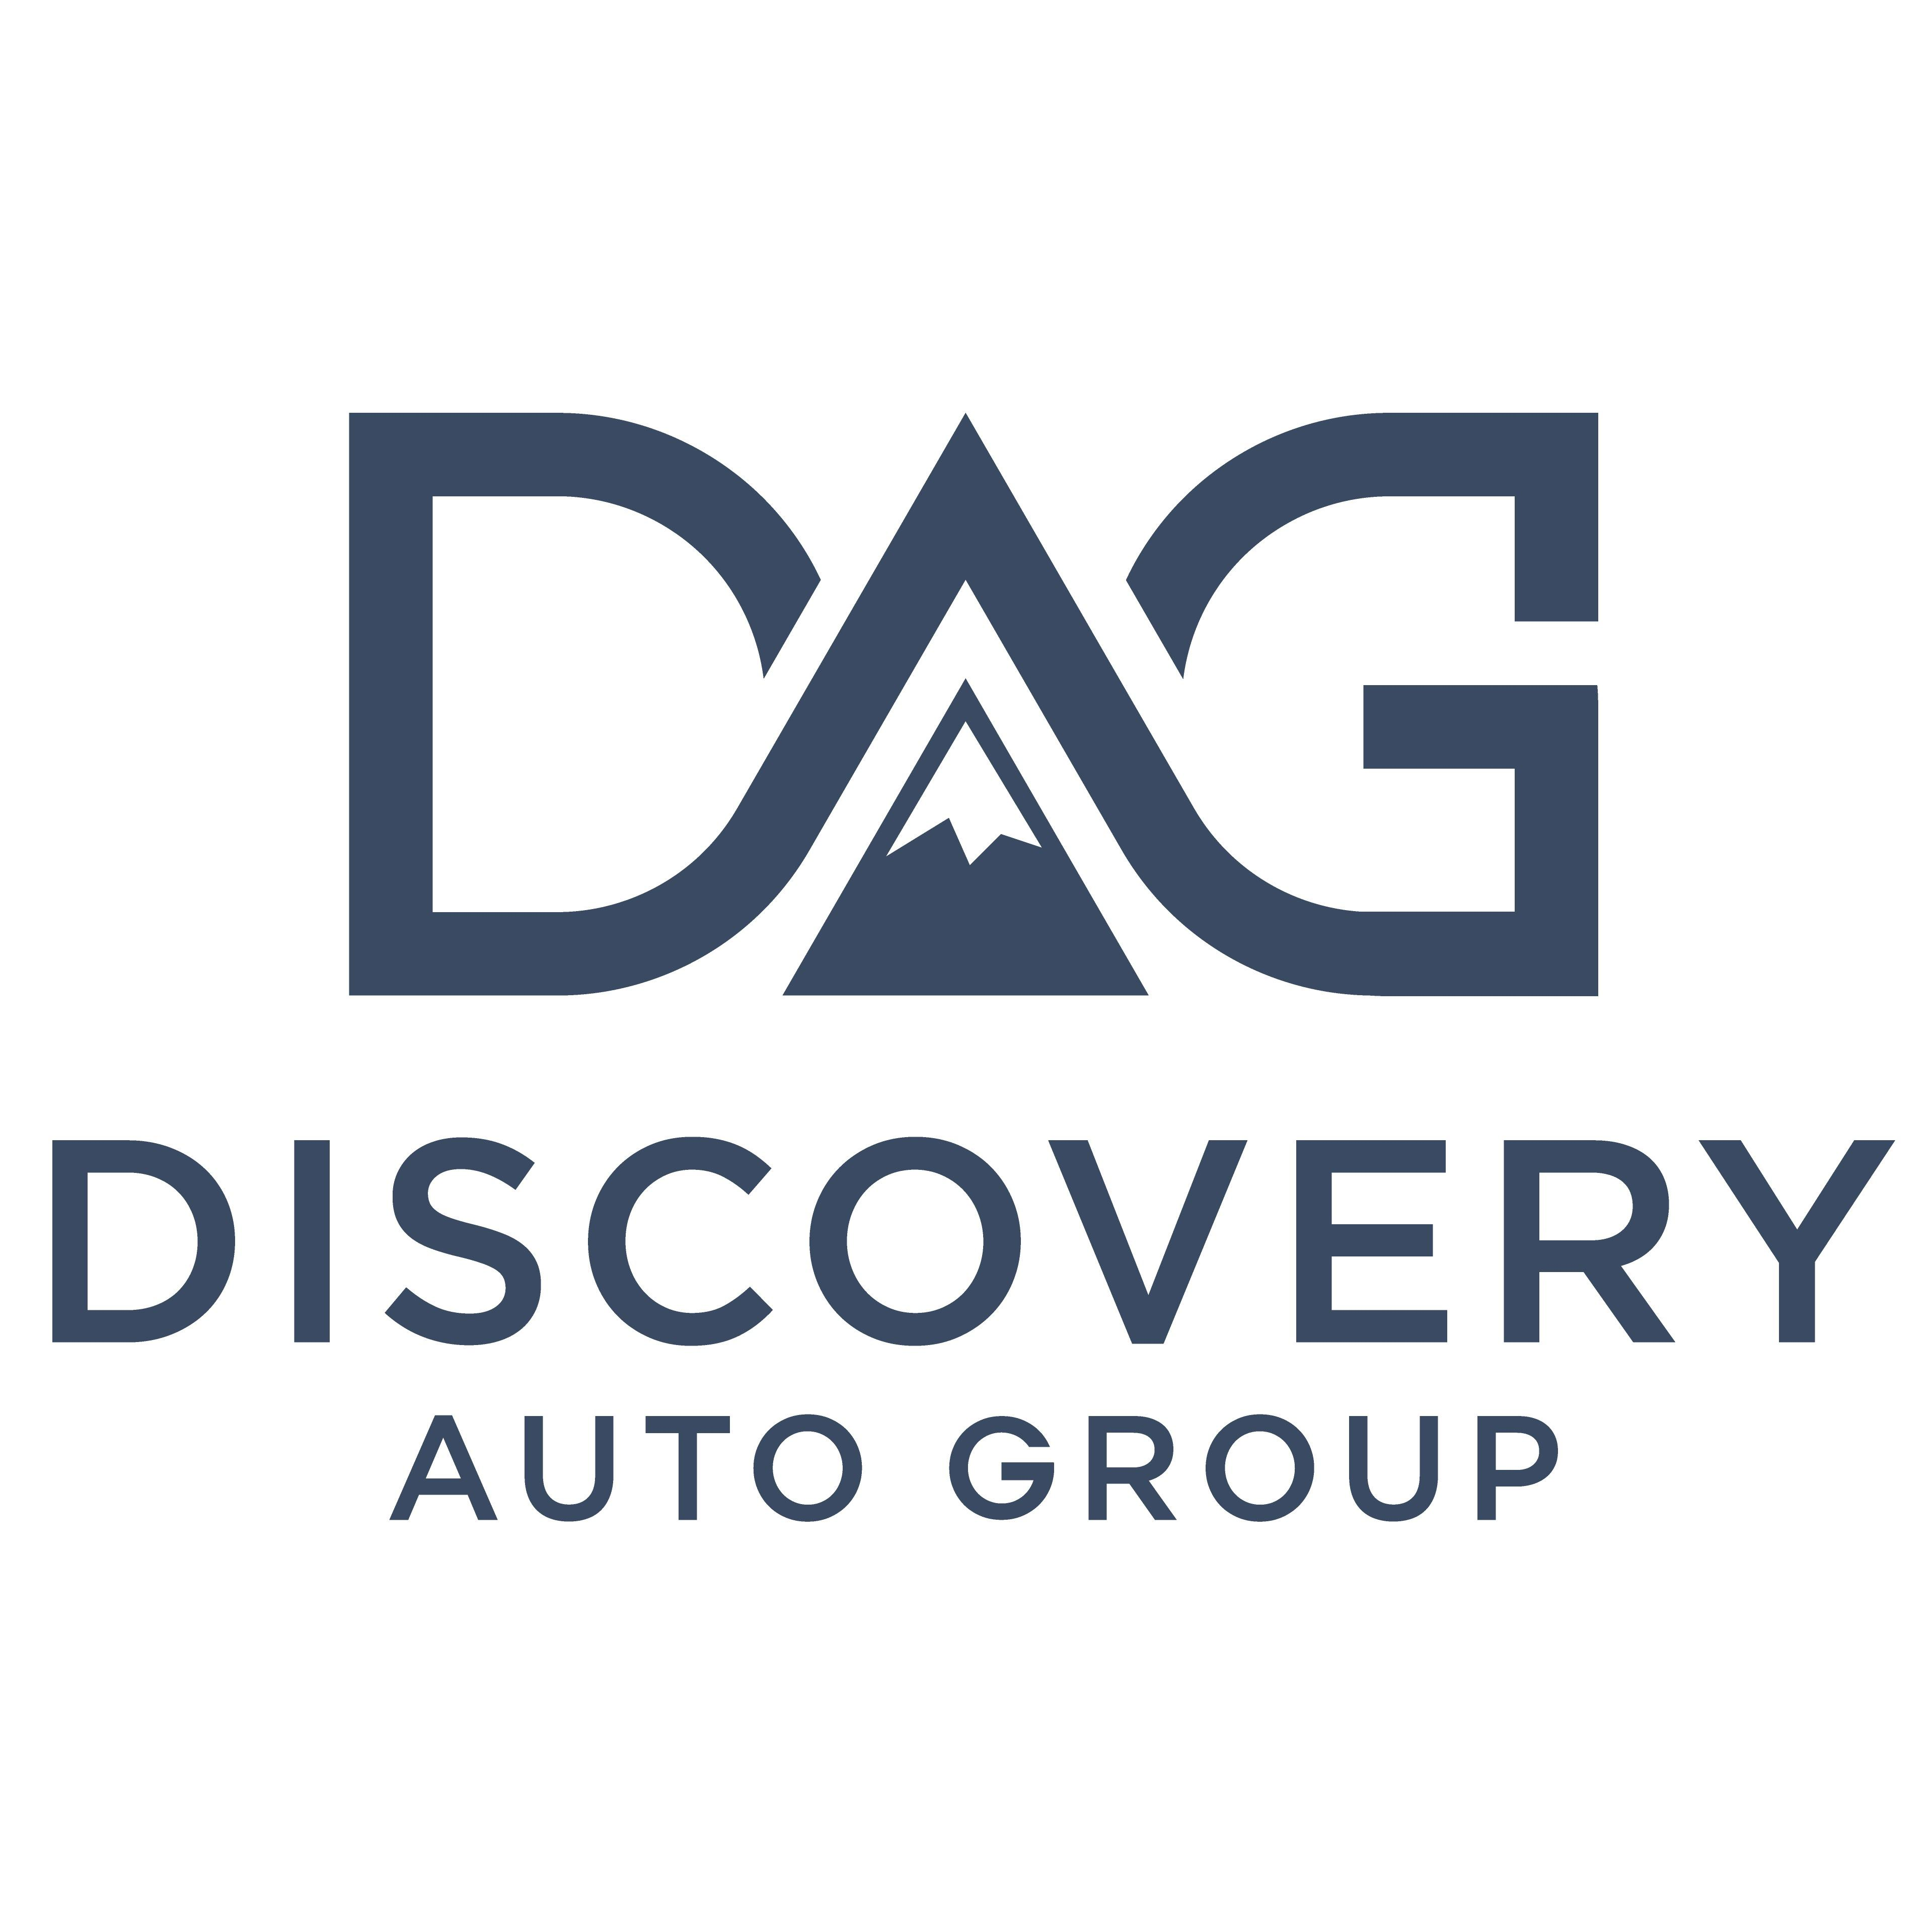 Discovery Auto Group image 3